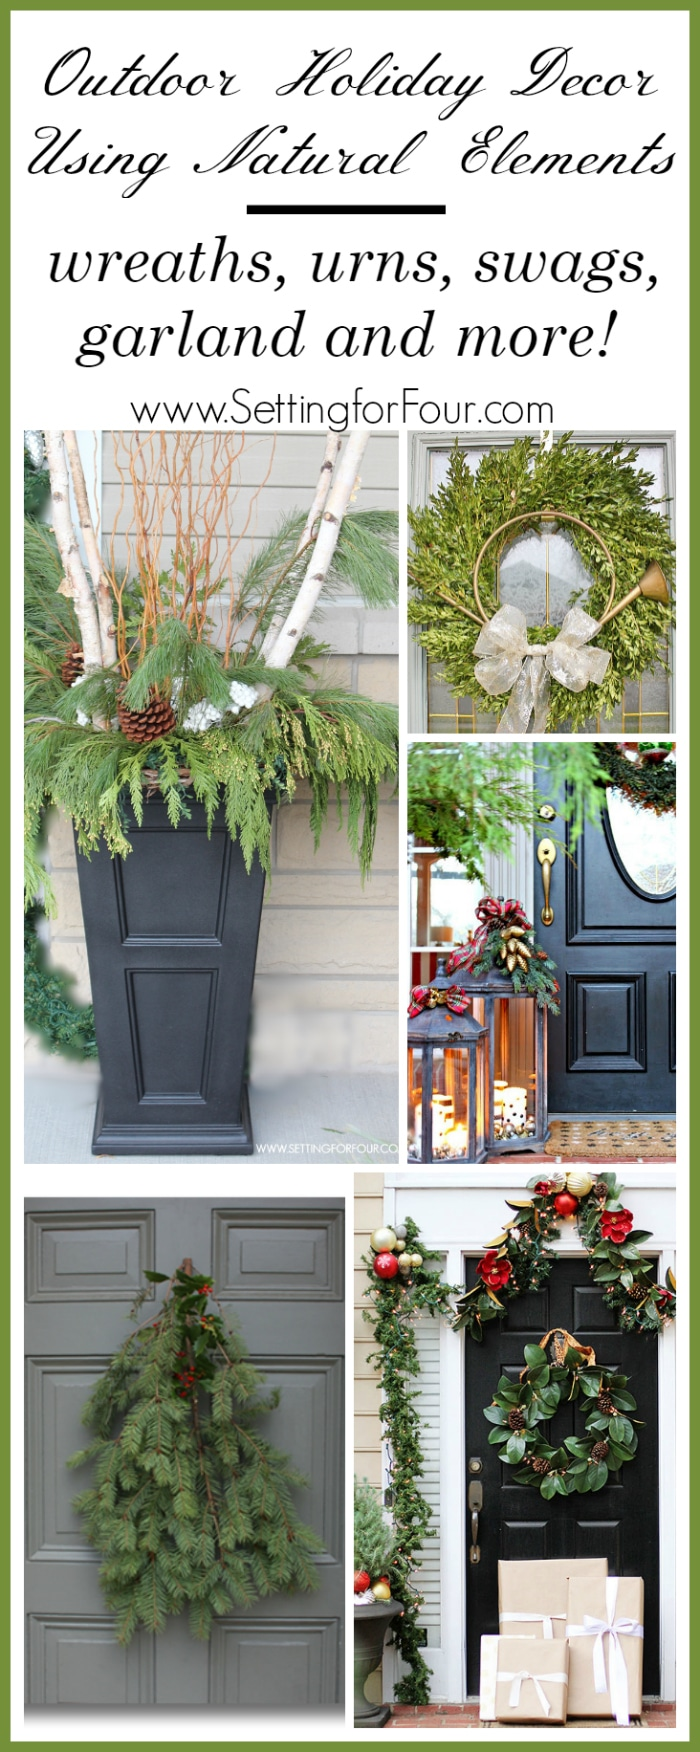 Article Beautiful Outdoor Holiday Decor With Natural